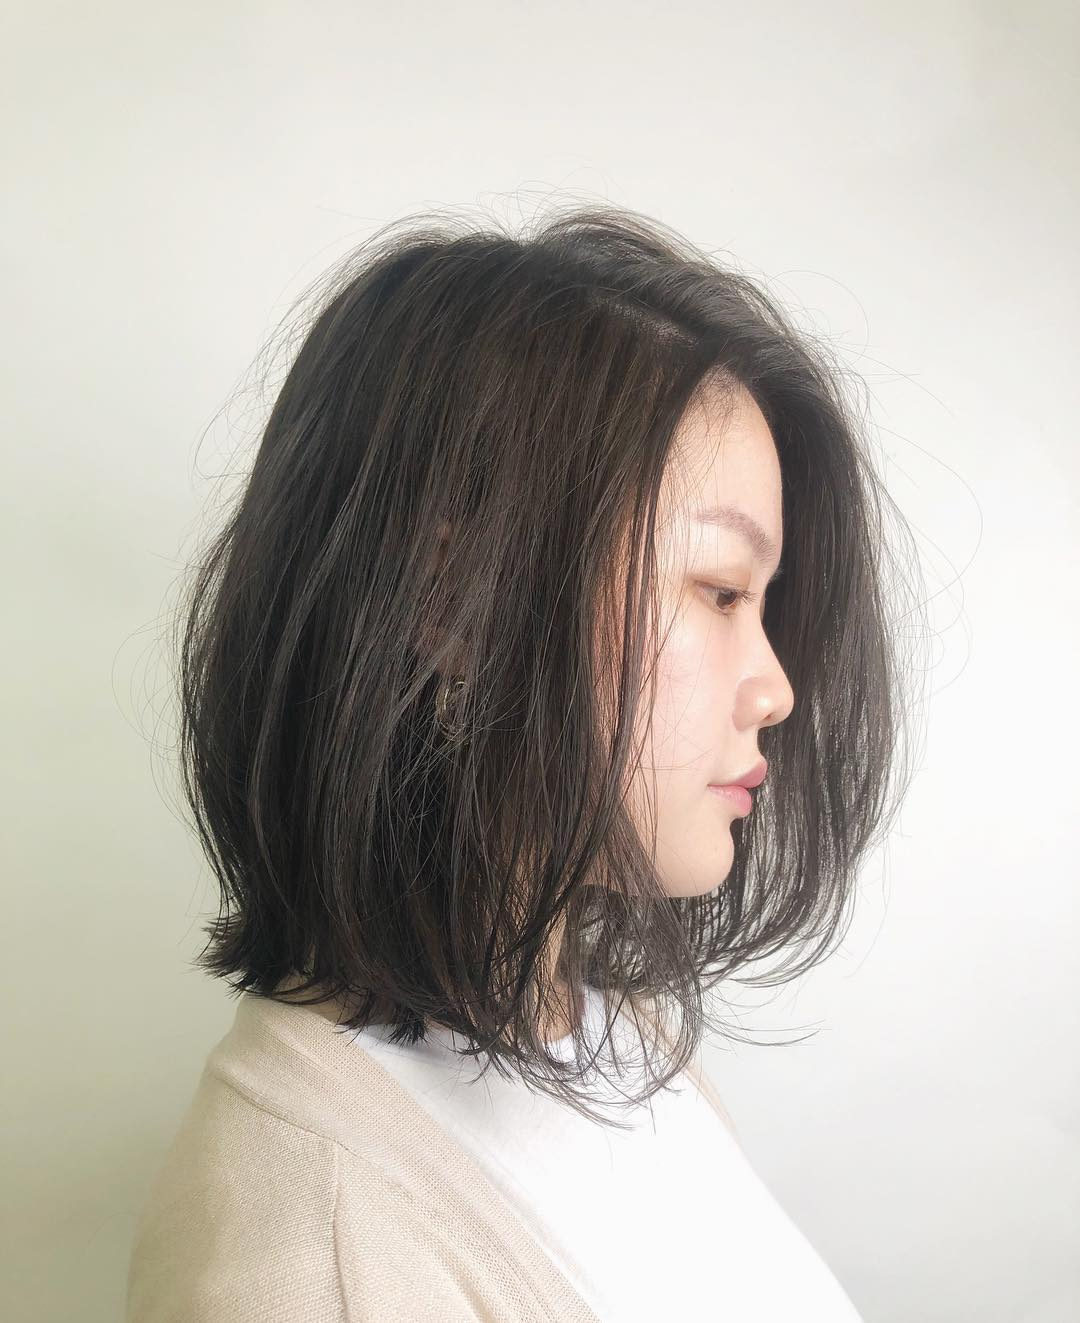 Cut + Perm (Chiho) by Fluxus House